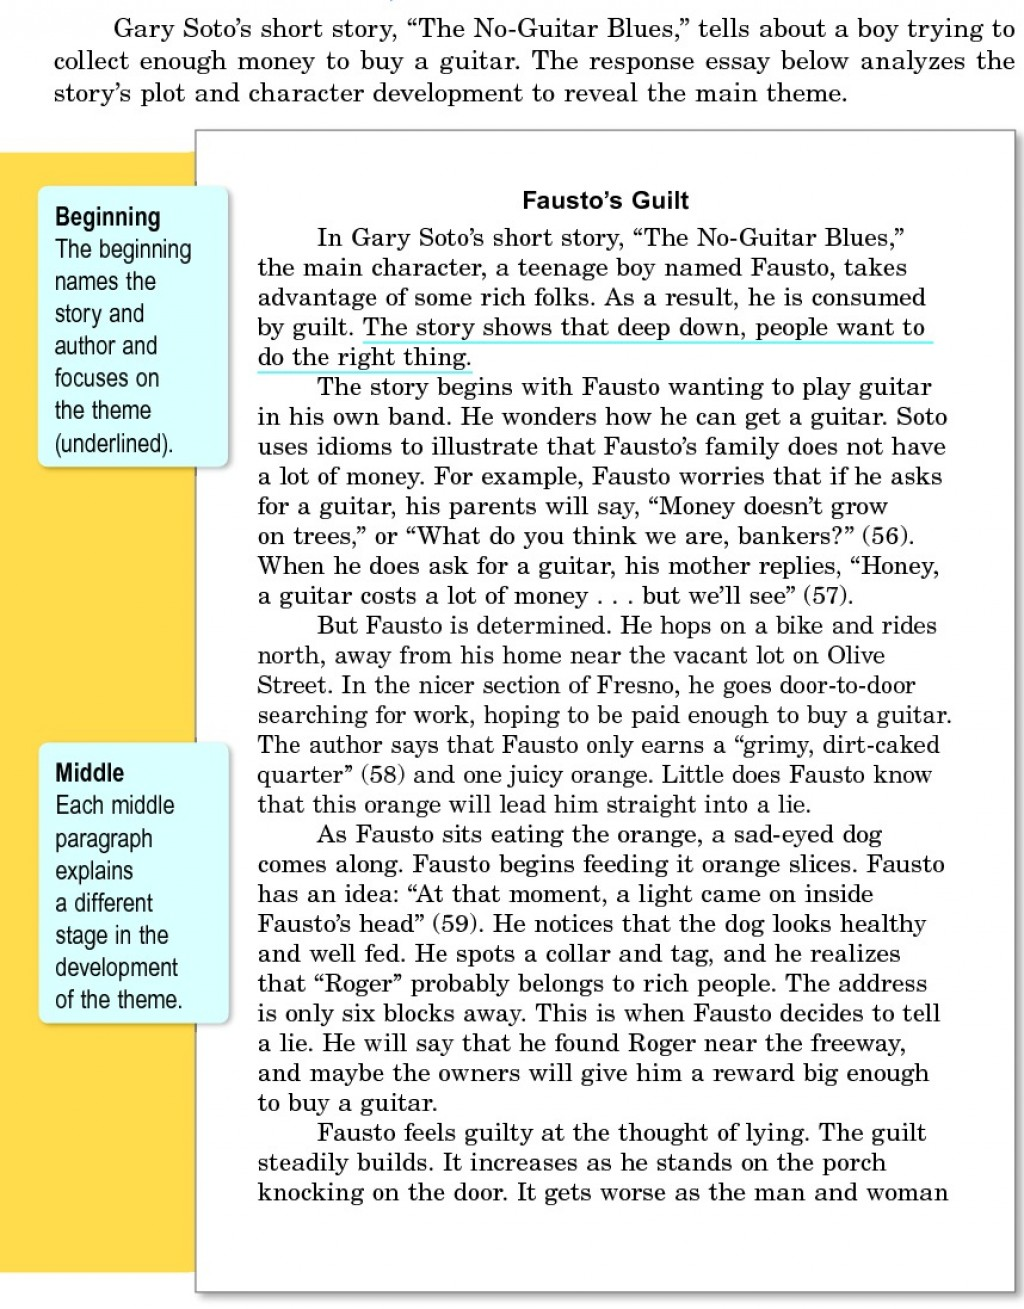 017 One Paragraph Essay Awesome About Dwarfism Topics Large